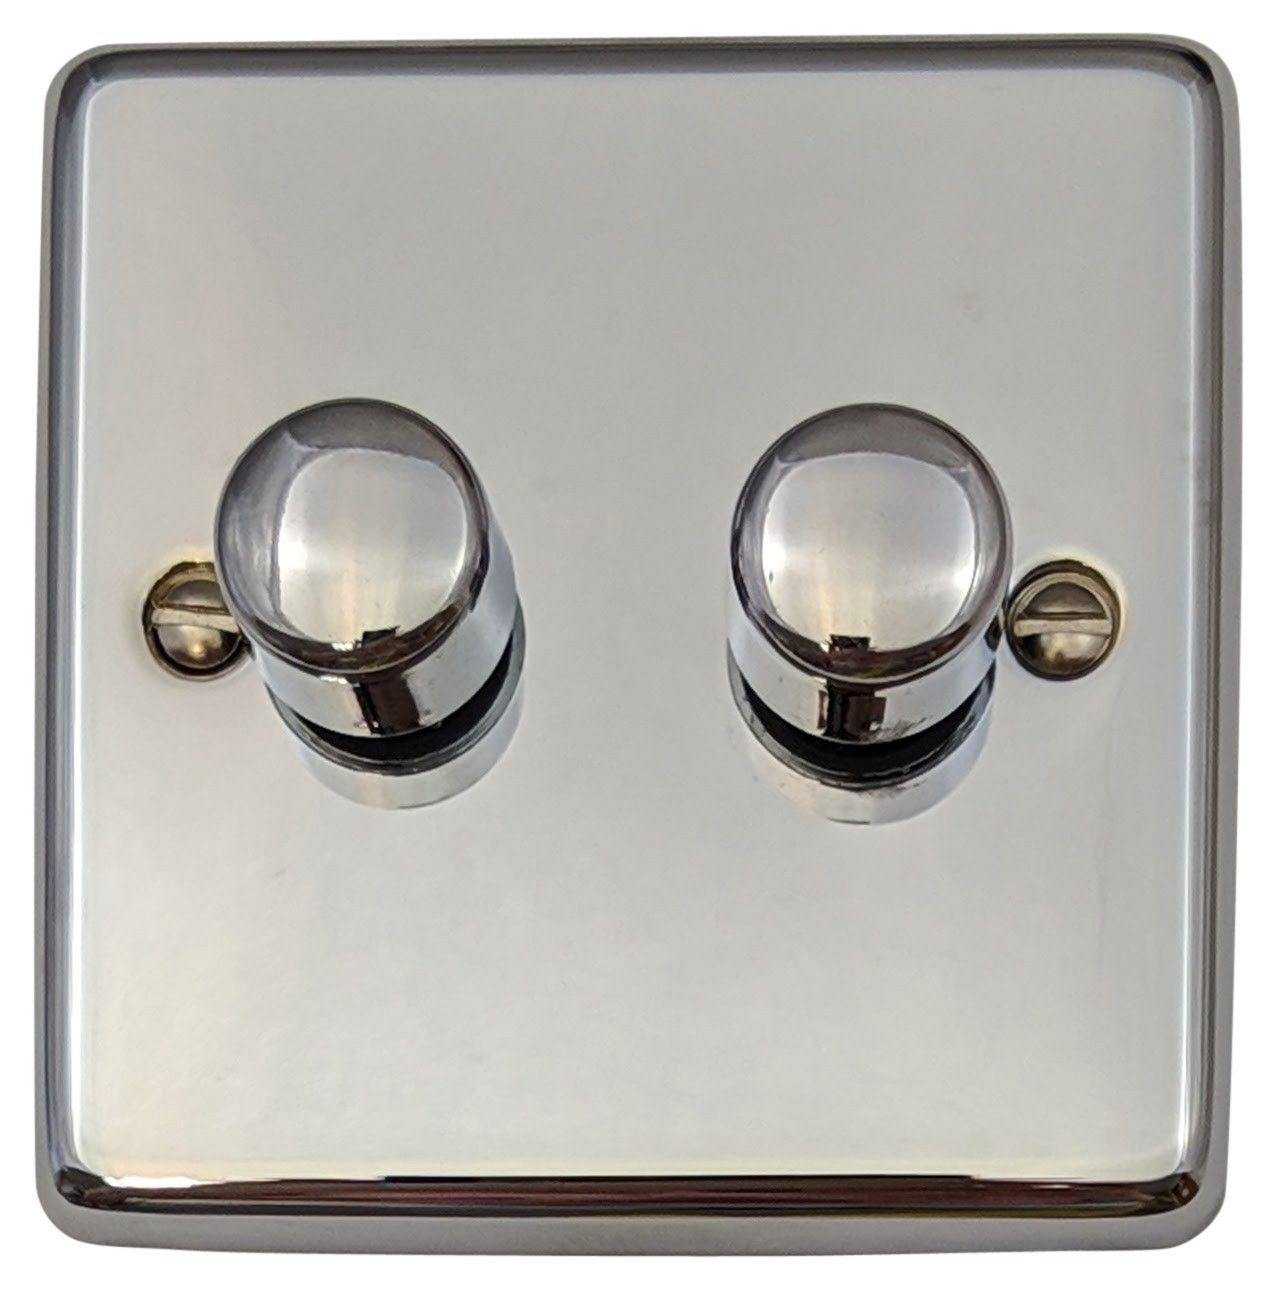 G&H CC12 Standard Plate Polished Chrome 2 Gang 1 or 2 Way 40-400W Dimmer Switch